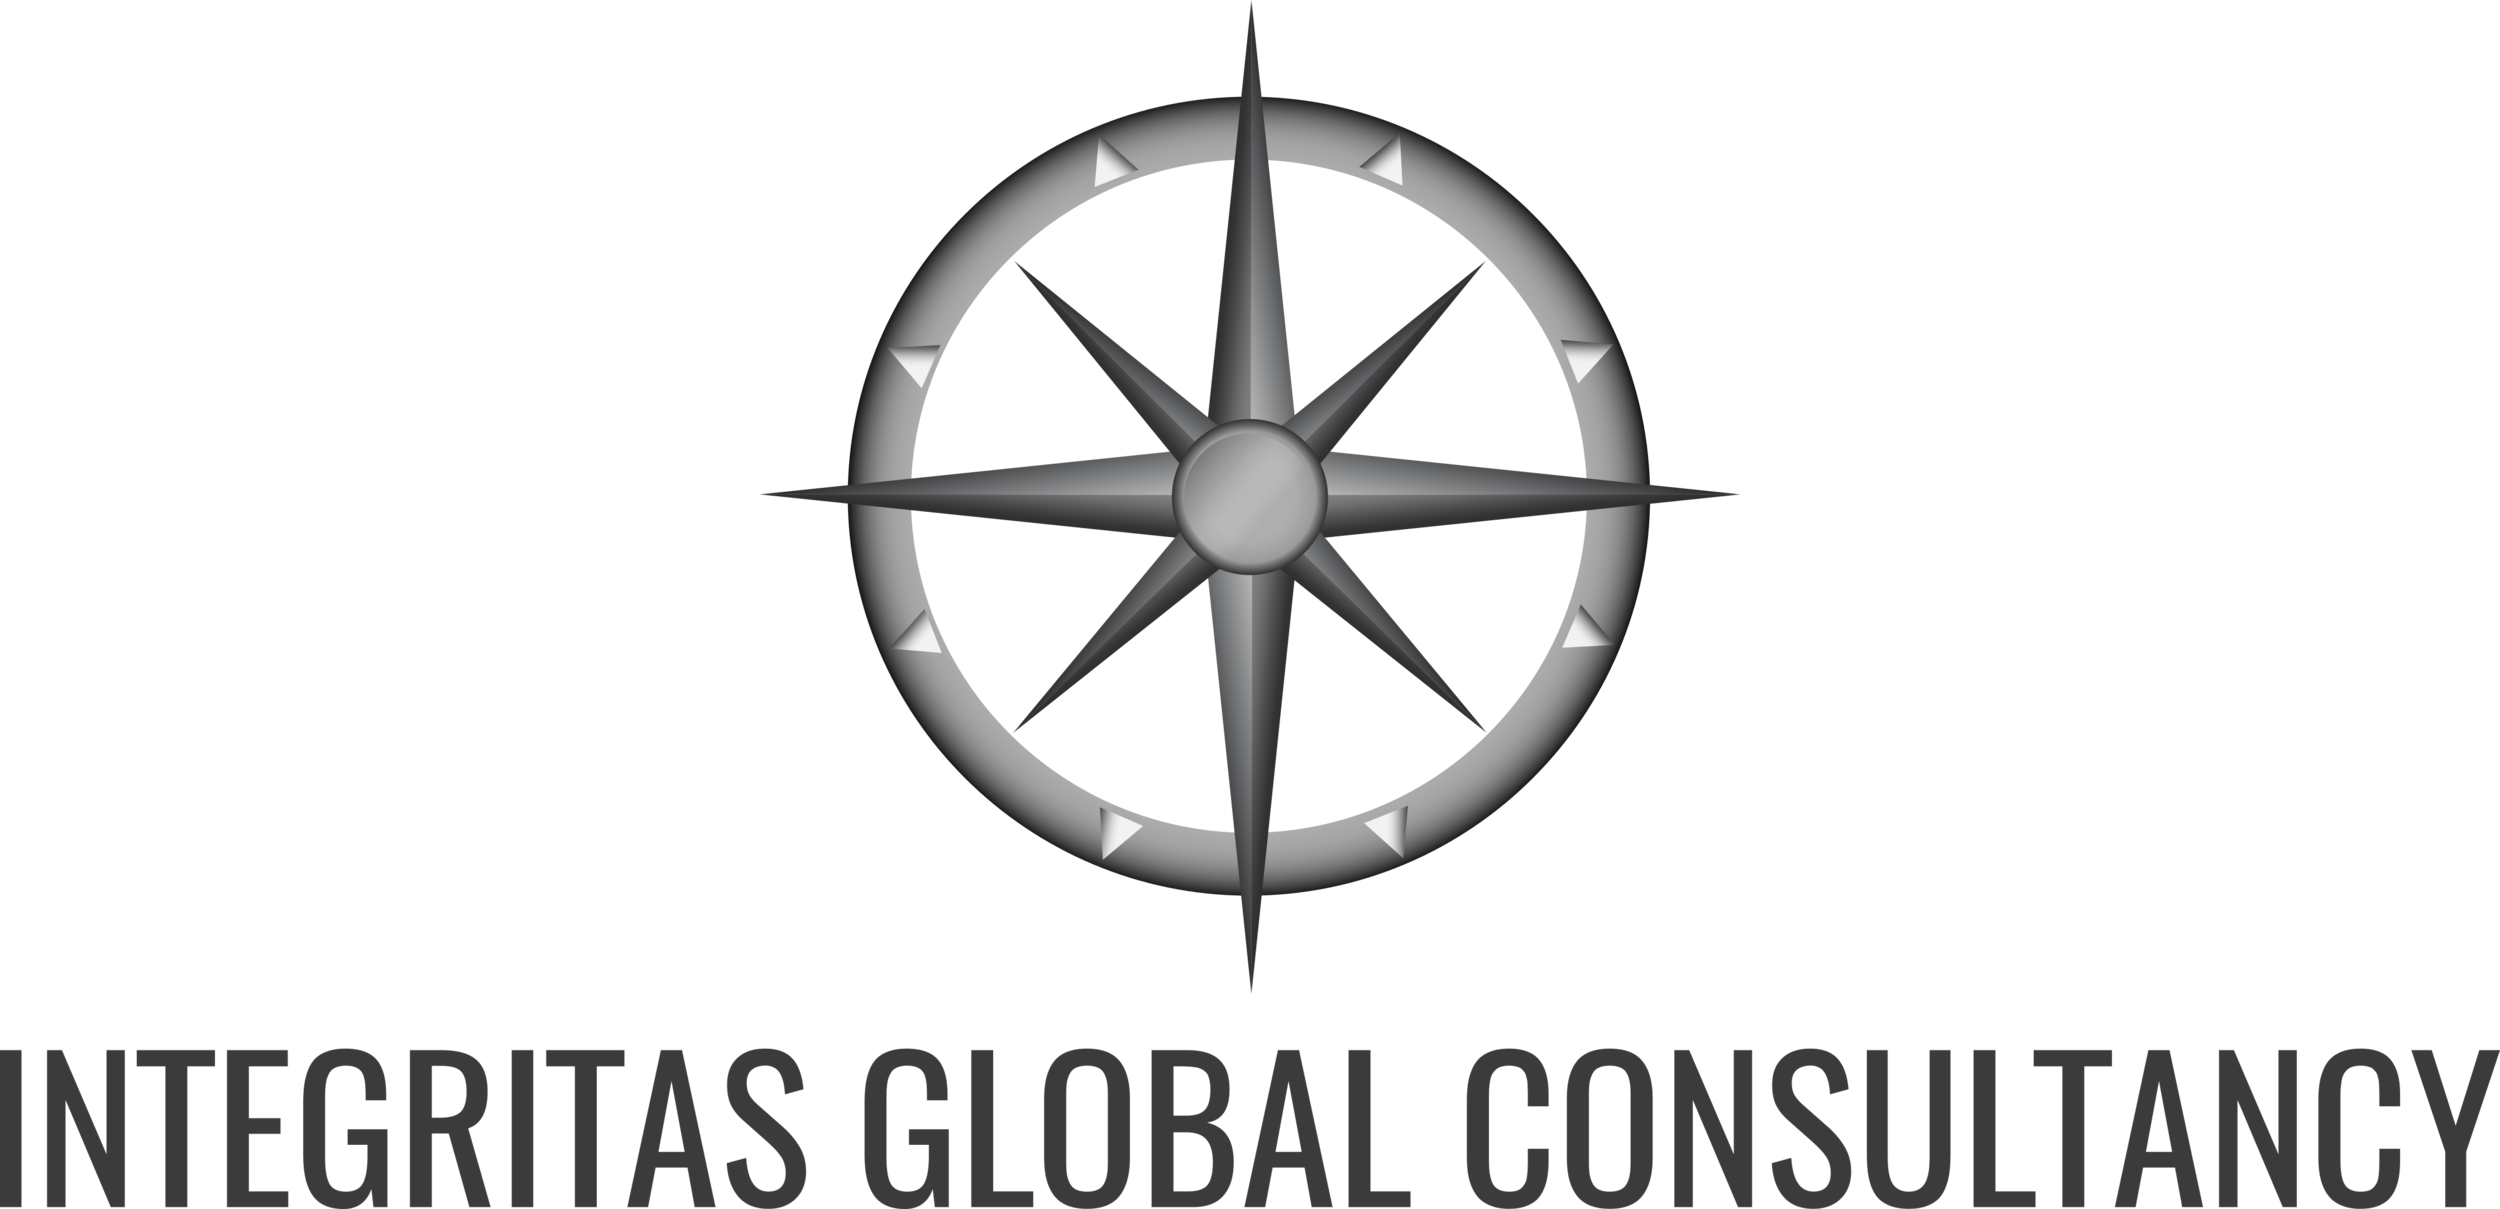 I ntegritas Global Consultancy (IGC) is staffed by former Home Office Police, Service Police, National Crime Agency and UK Armed Forces professionals. We provide Forensic and Specialist Investigation training, conduct investigations and deliver bespoke leadership and talent programmes. IGC was founded in January 2015 with a clear objective: to provide a more honest, proficient and cost effective service than our competitors, at home and overseas. Our co-owners, both of who have a combined total of over 55 years of demonstrable experience within the military, law enforcement and training arenas, are dedicated to the delivery of a first-class service that is underpinned by exceptional values and standards and above all, integrity and client confidentiality. We are only staffed by like-minded professionals who are equally passionate about their respective fields of expertise which ensures continual excellence in the services that we deliver. The establishment and maintenance of enduring client and partner company relationships is also a core tenet of the IGC ethos and we are continually seeking innovative development opportunities that are mutually beneficial to our friends, associates and ourselves.  For more information please contact Fusion today on (023) 94217 000  /  (028) 9124 5315 or email info@fusionforensics.com